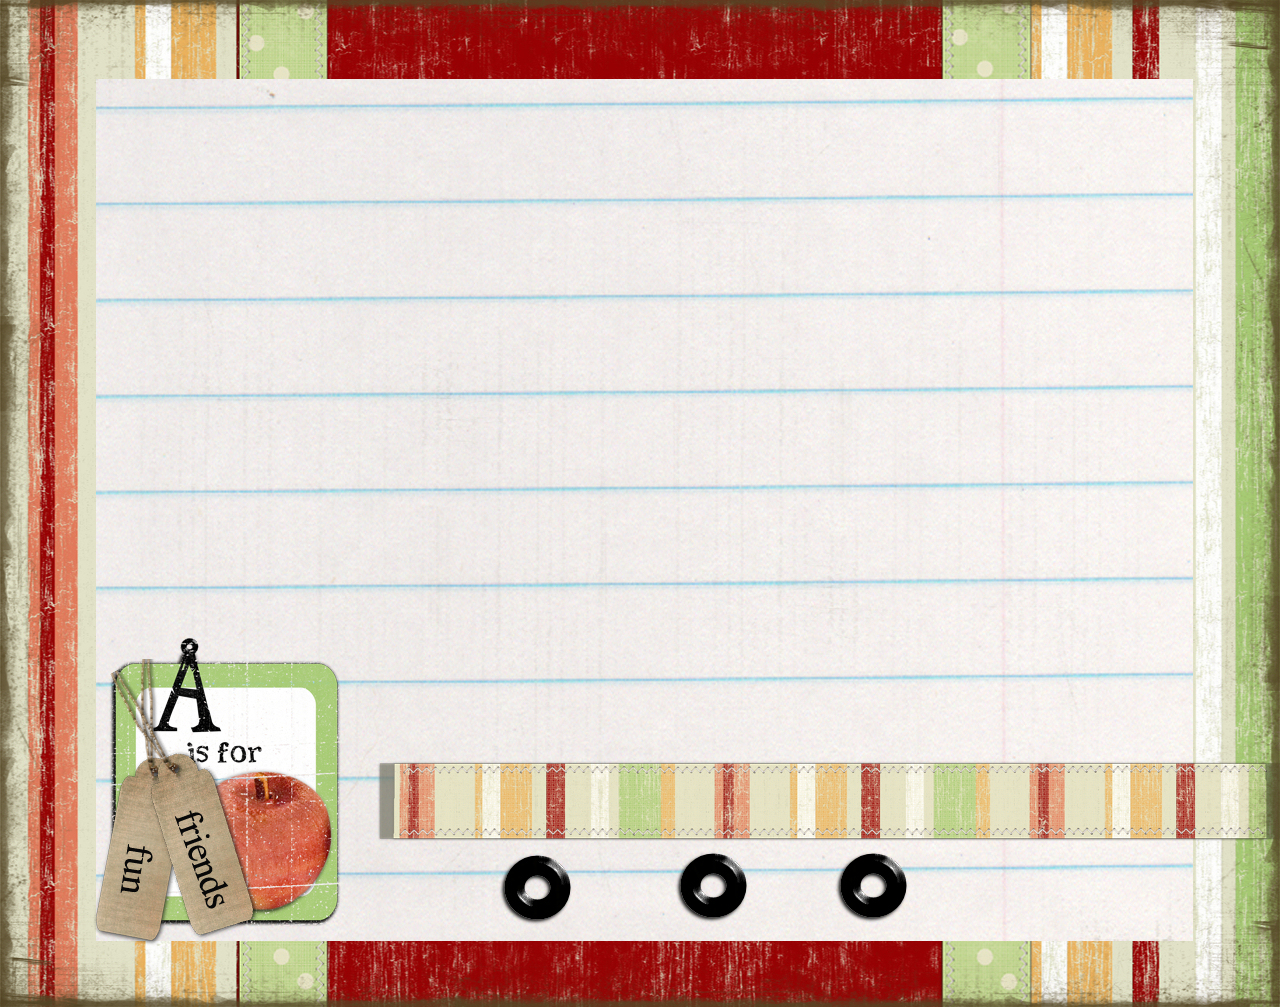 Free Download Abc Notepaper Back To School Backgrounds Wallpapersjpg 1280x1007 For Your Desktop Mobile Tablet Explore 48 Free School Backgrounds And Wallpapers School Desktop Wallpaper Schools Out Wallpaper